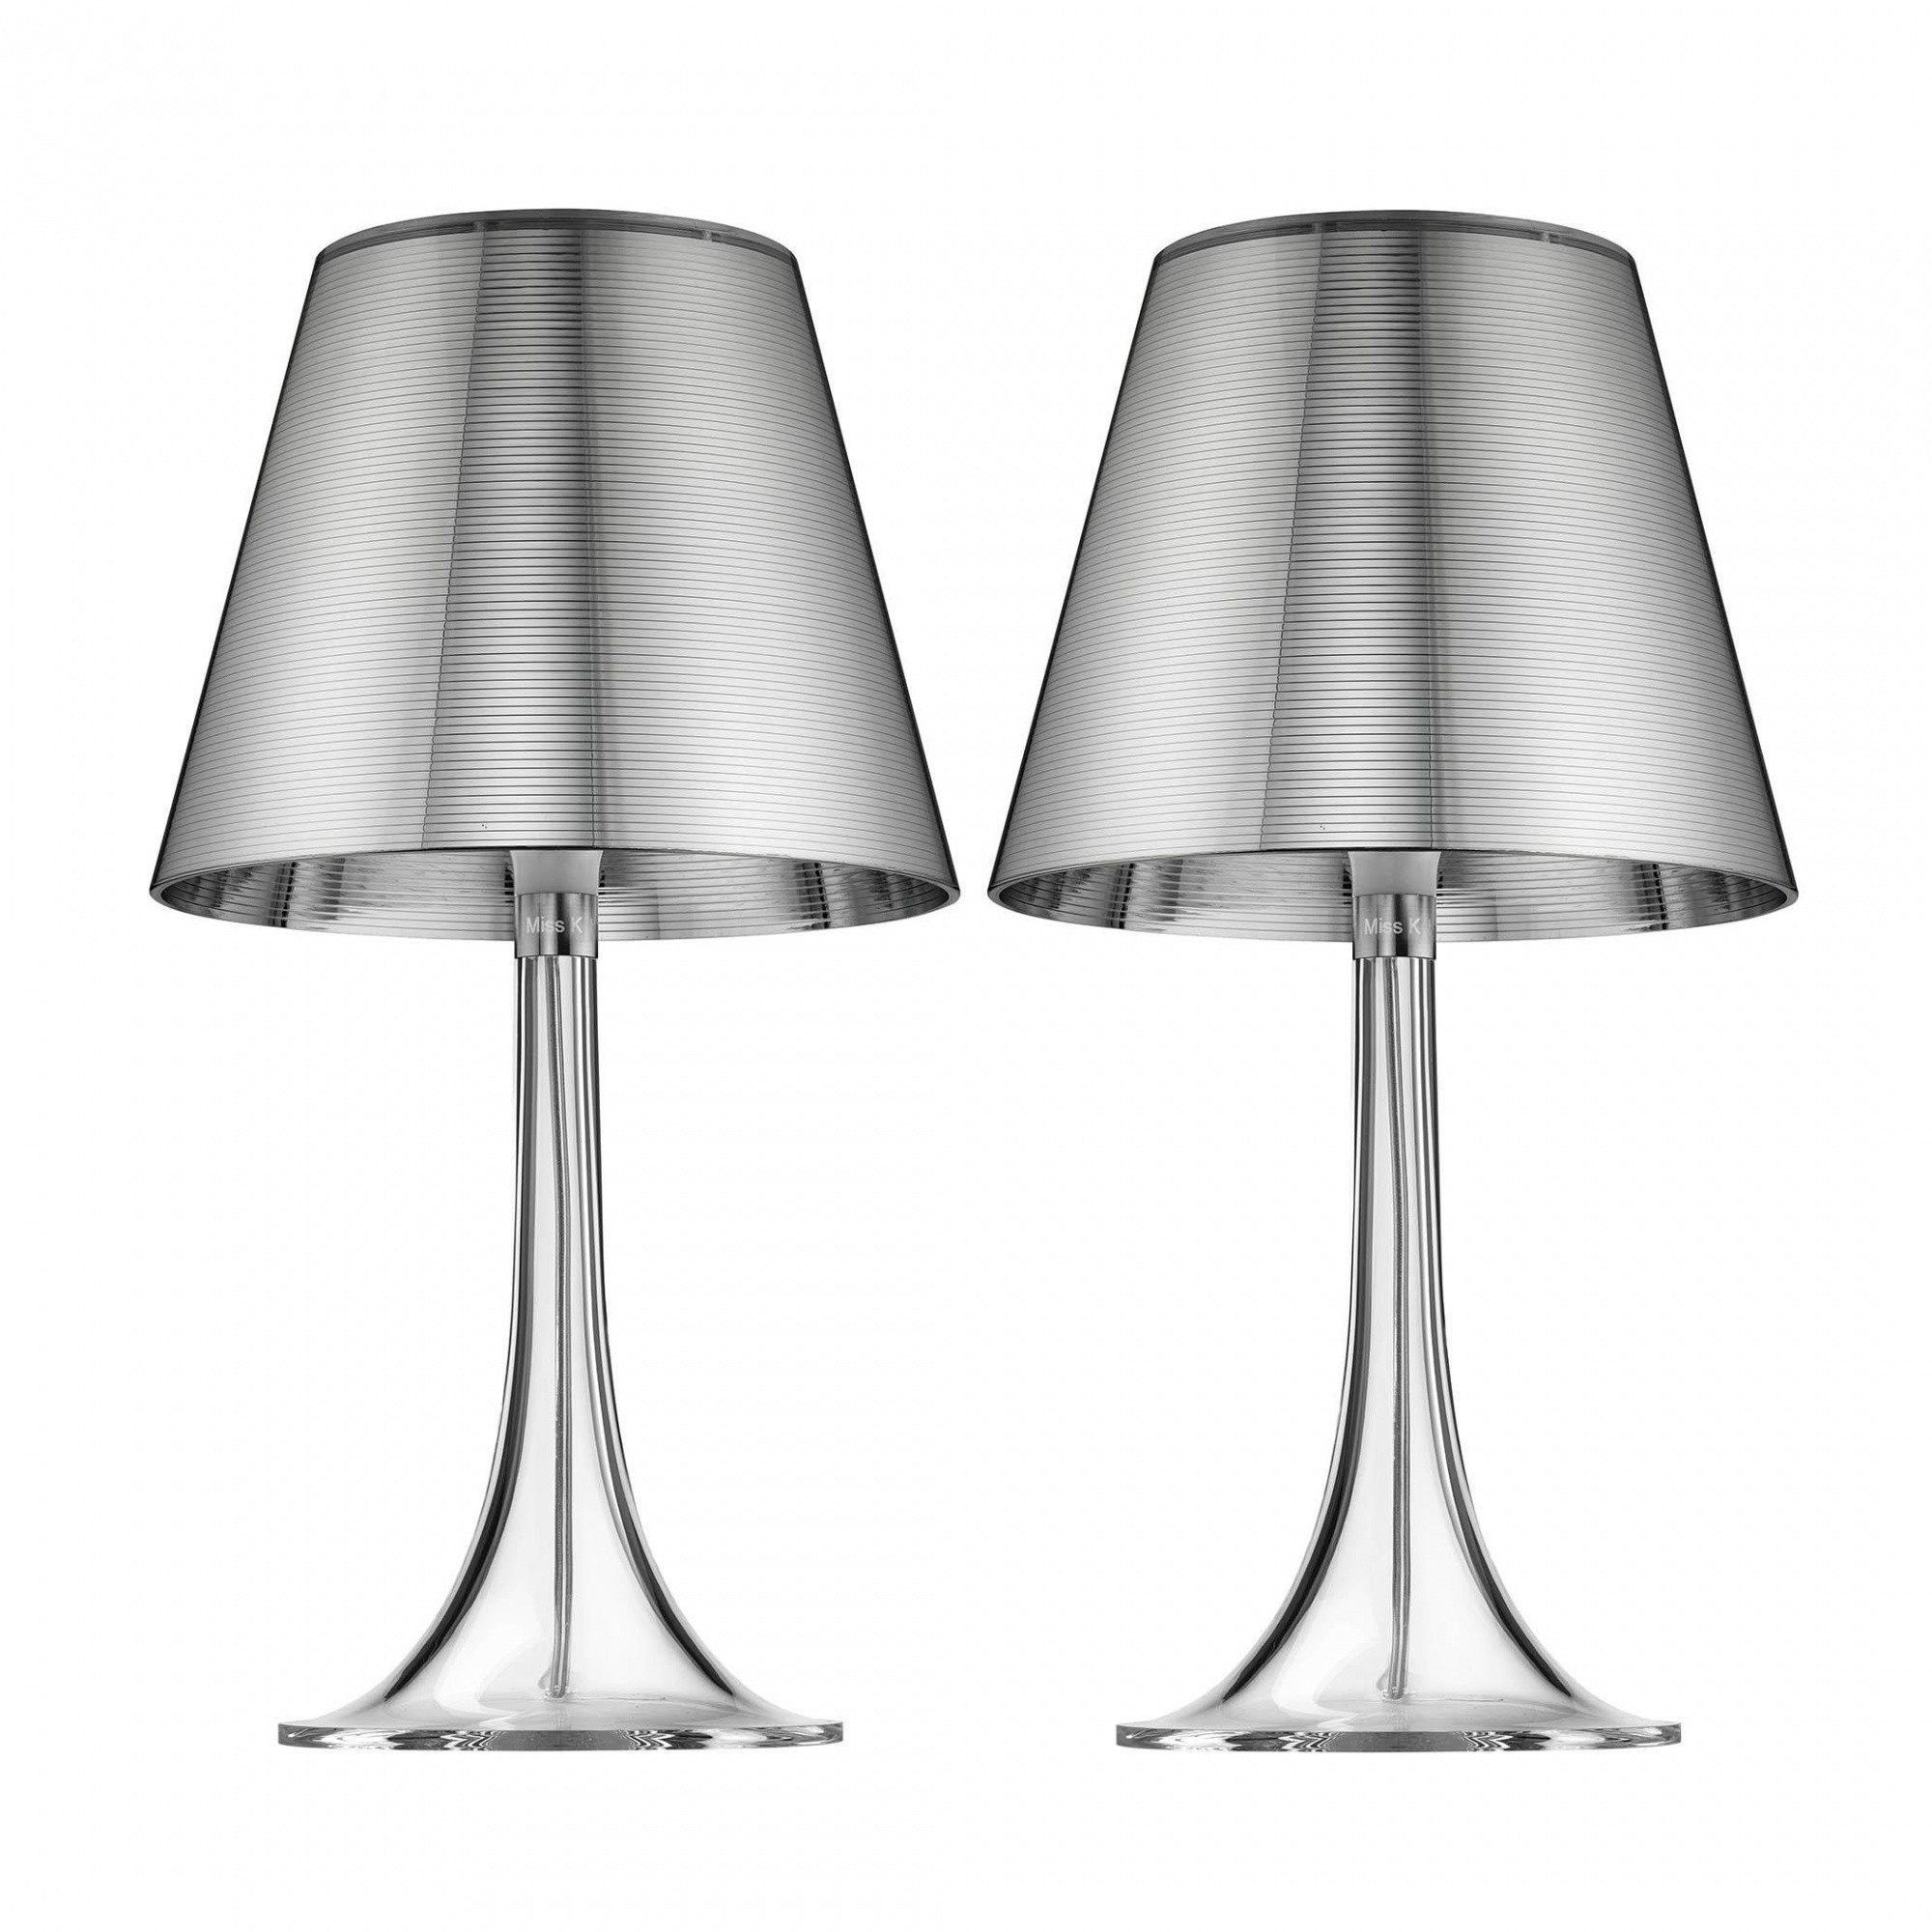 Designer Tischleuchten Miss K Table Lamp Set